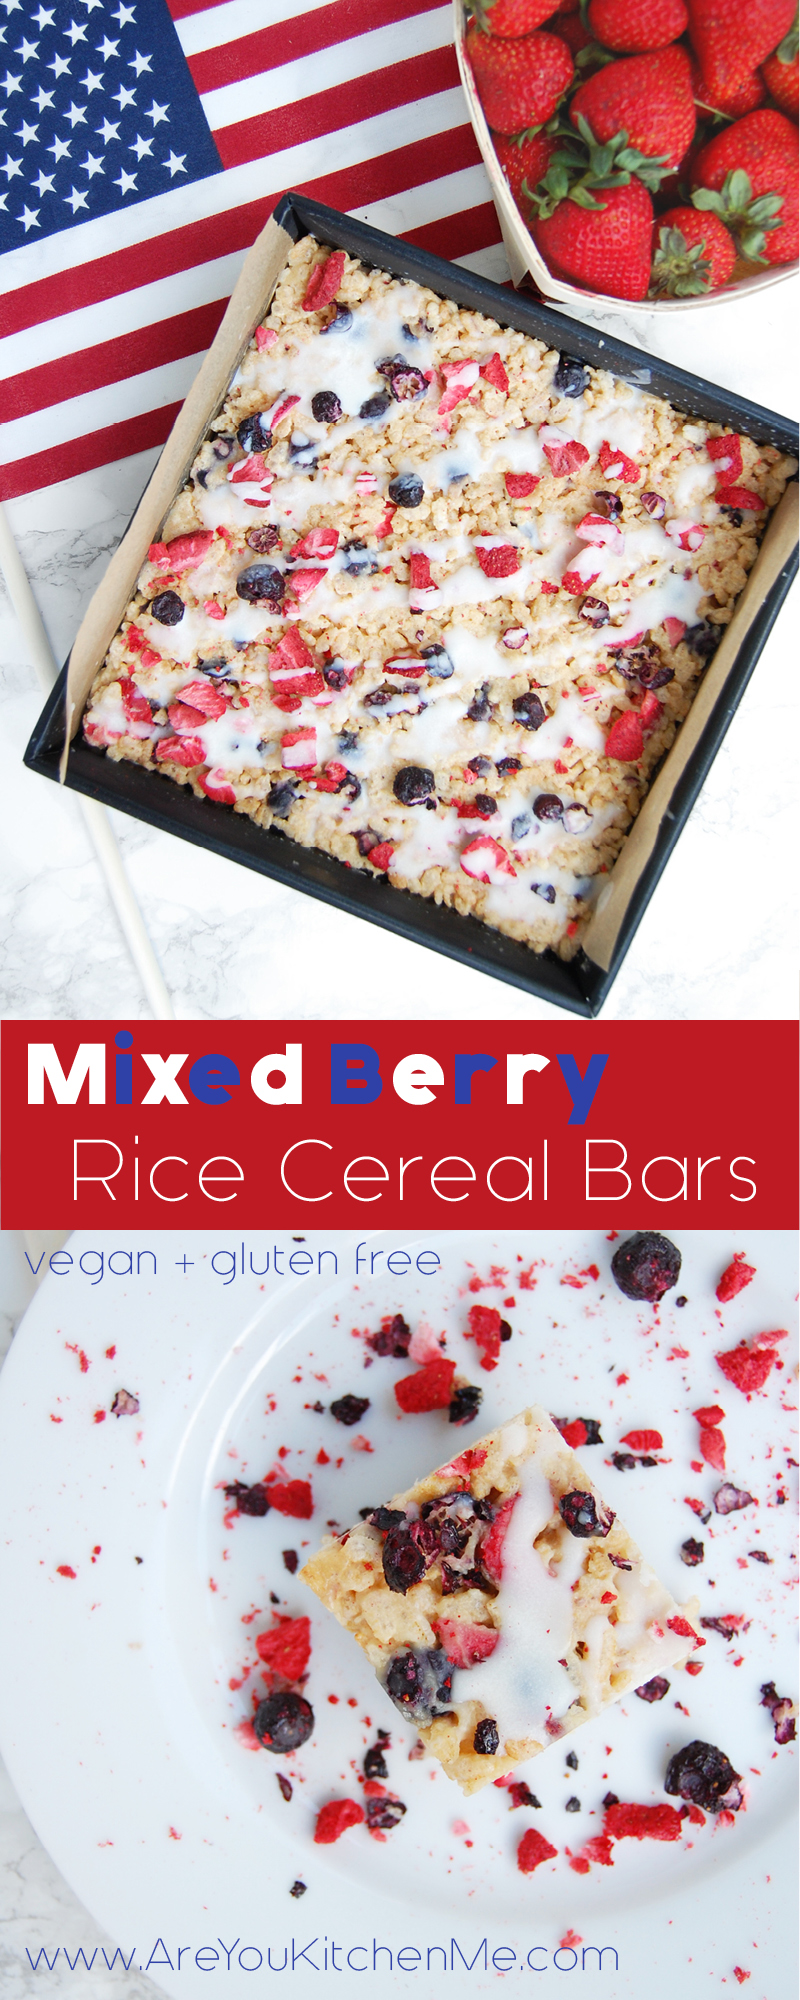 Mixed Berry Rice Cereal Bars   AreYouKitchenMe.com